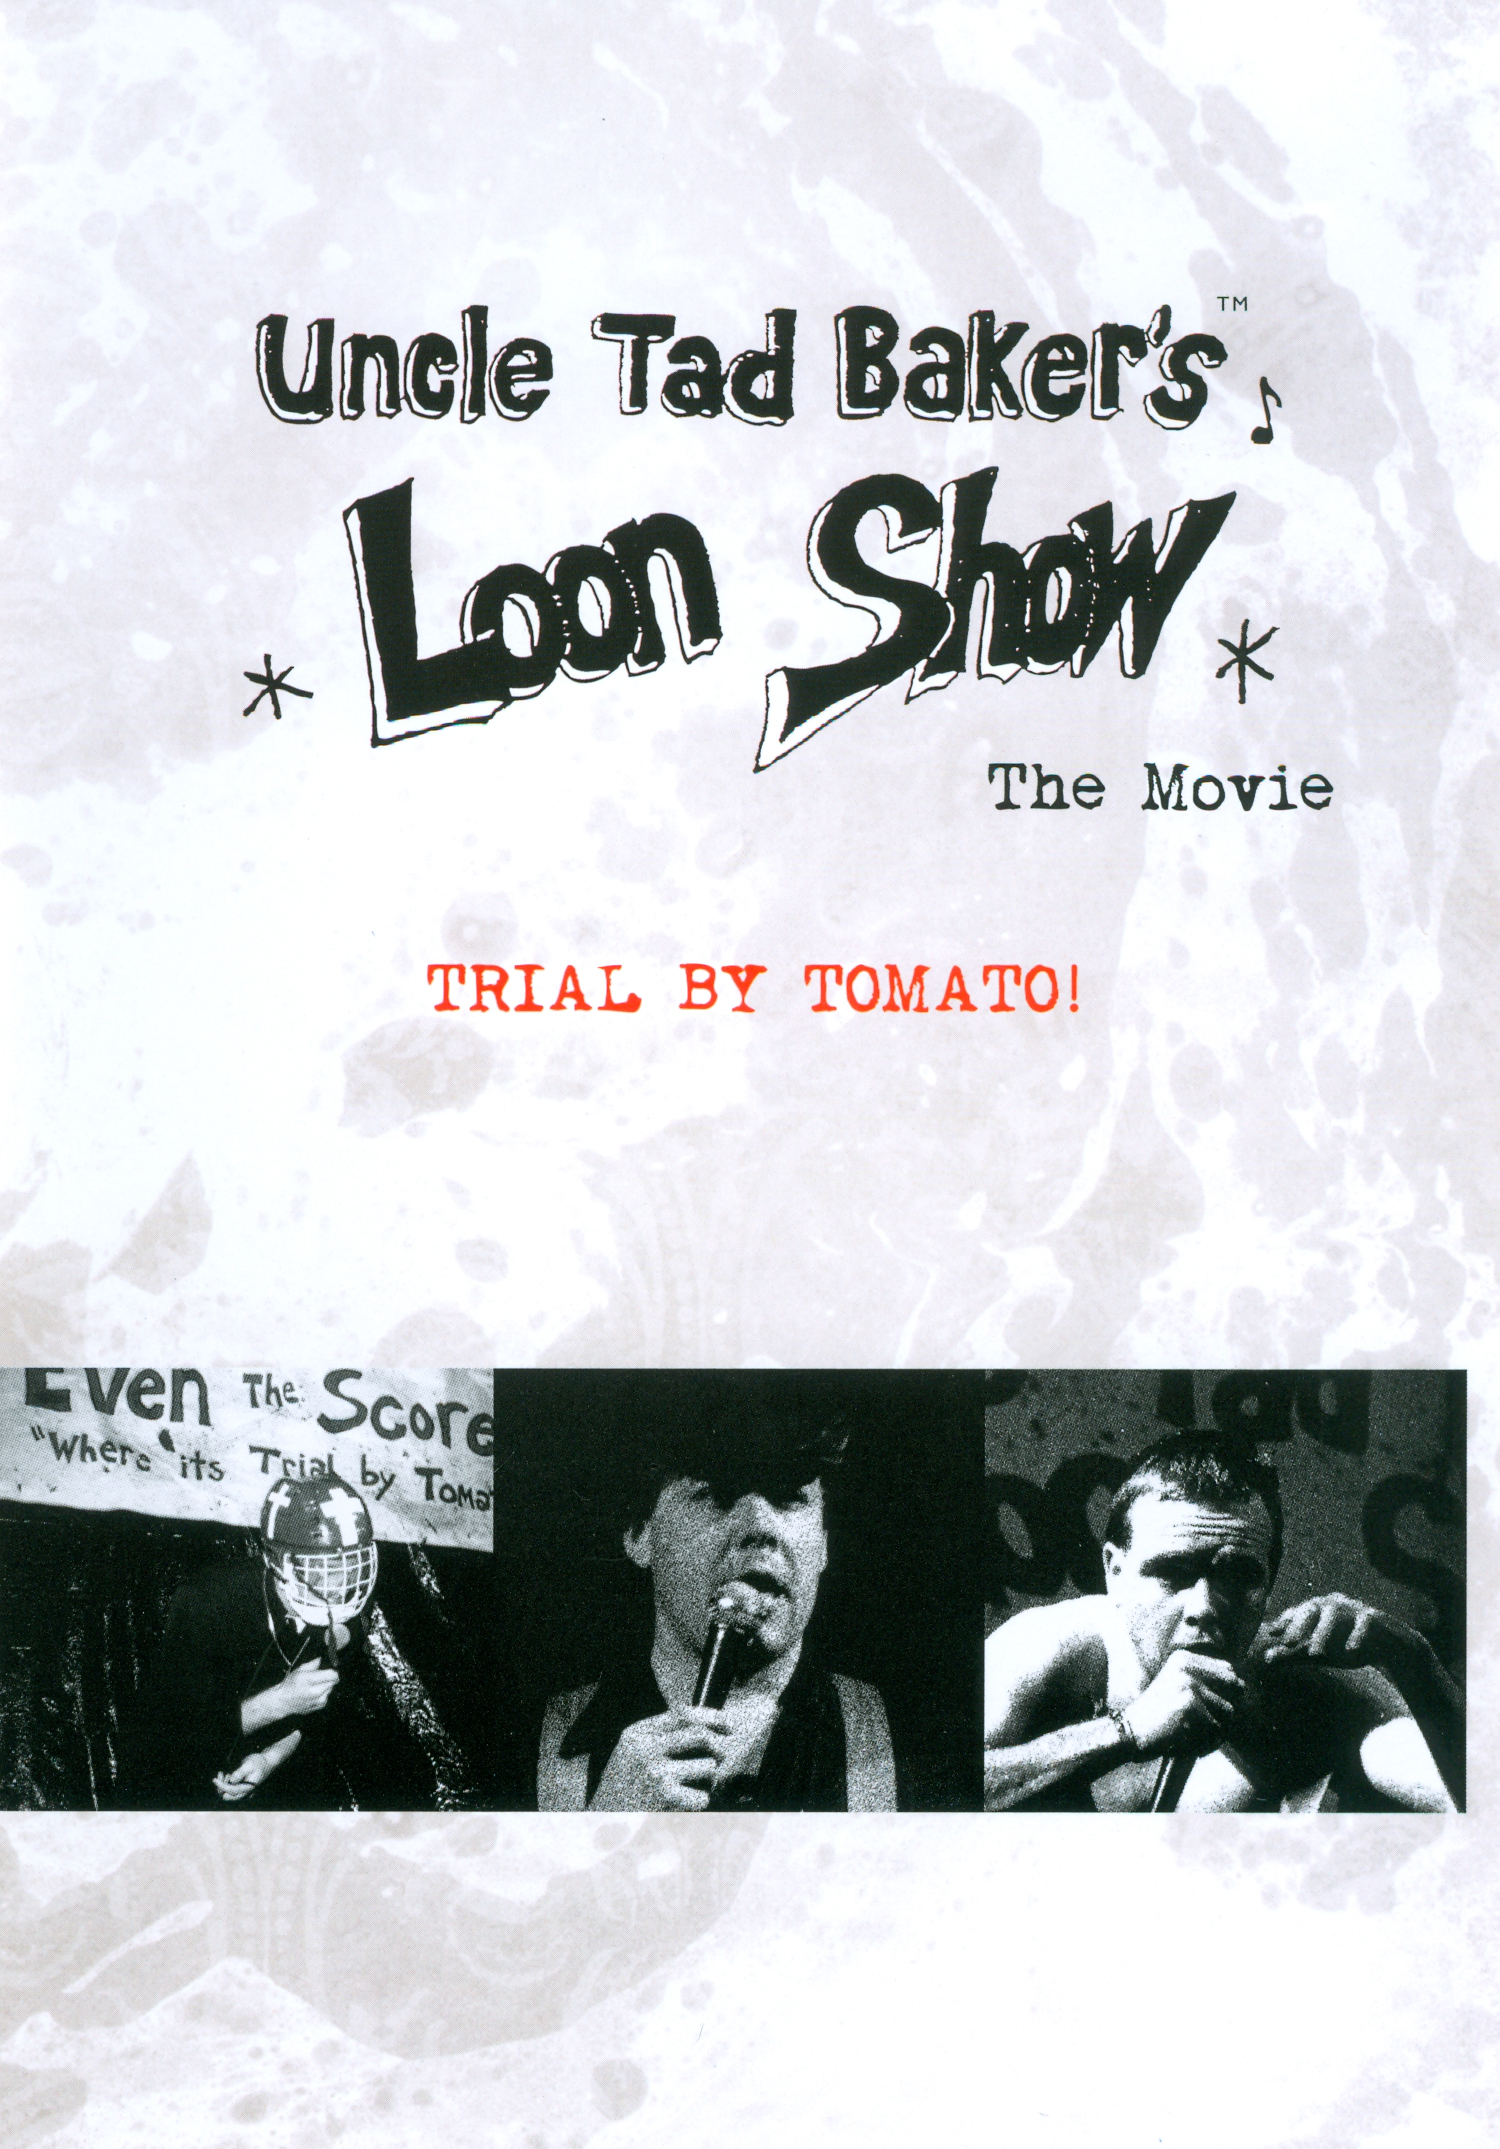 Uncle Tad Baker's Loon Show: The Movie